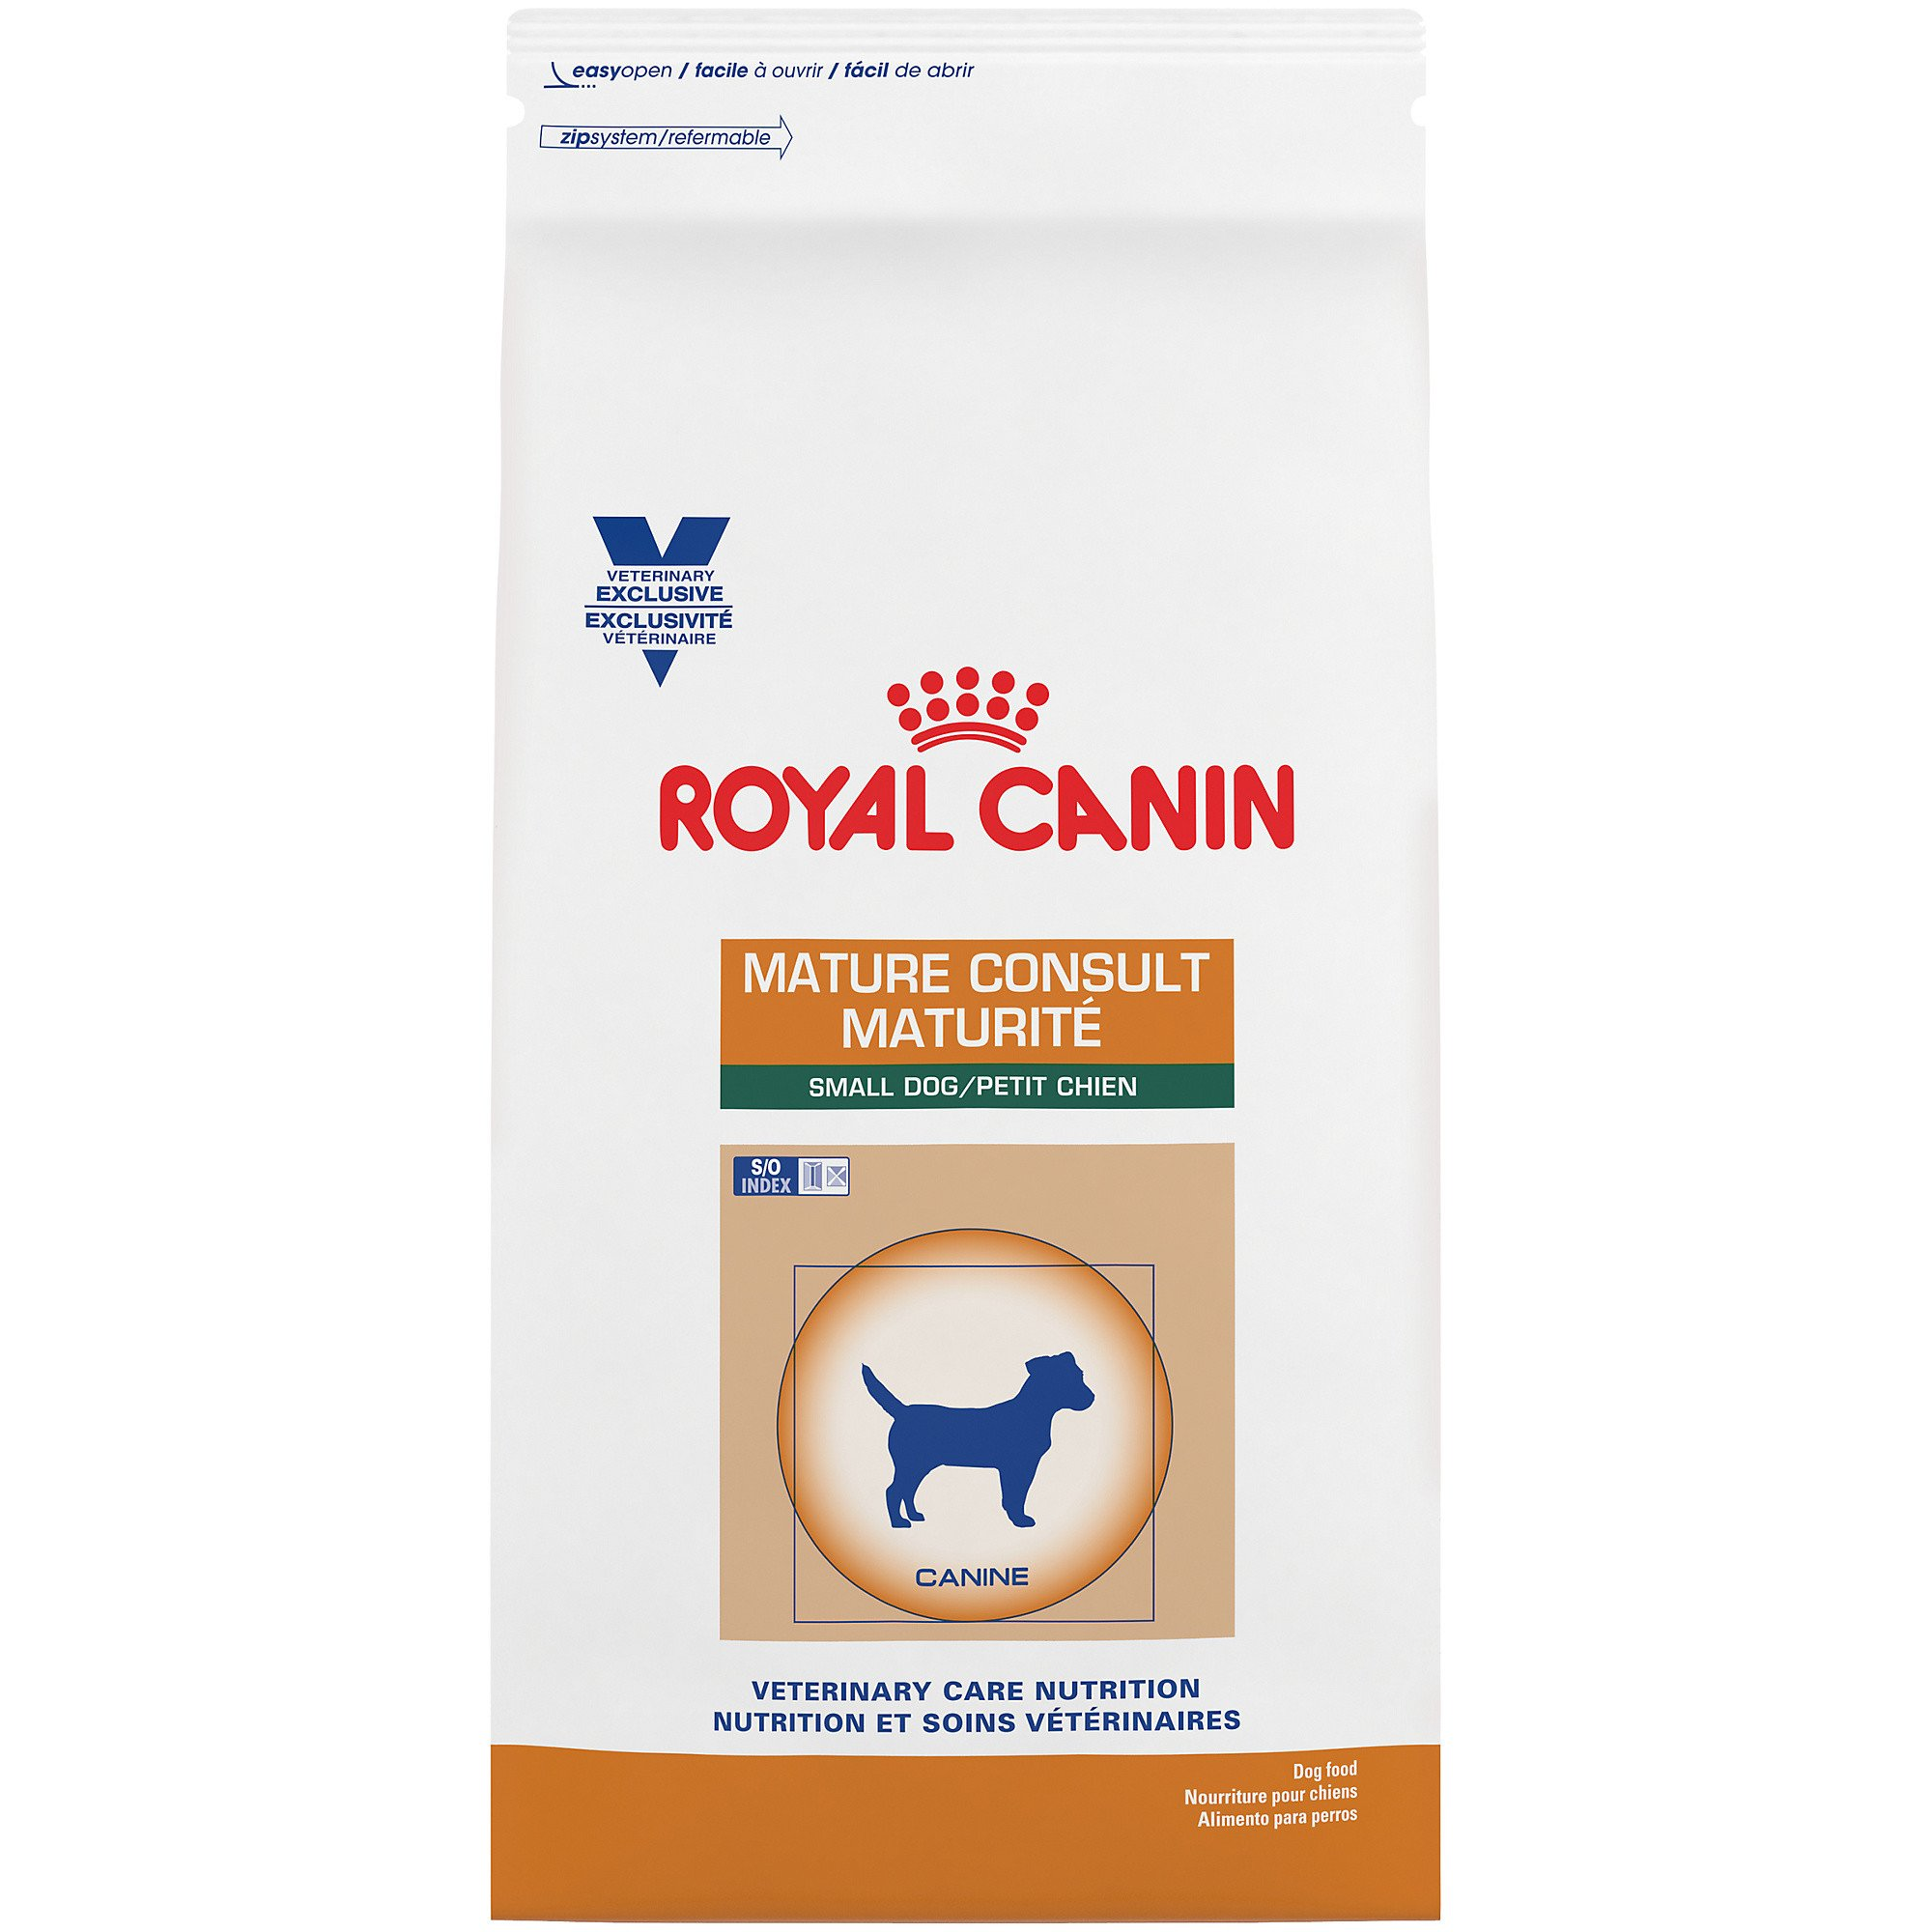 Royal Canin Veterinary Care Nutrition Canine Mature Consult Small Dog Dry Dog Food, 7.7 lbs.